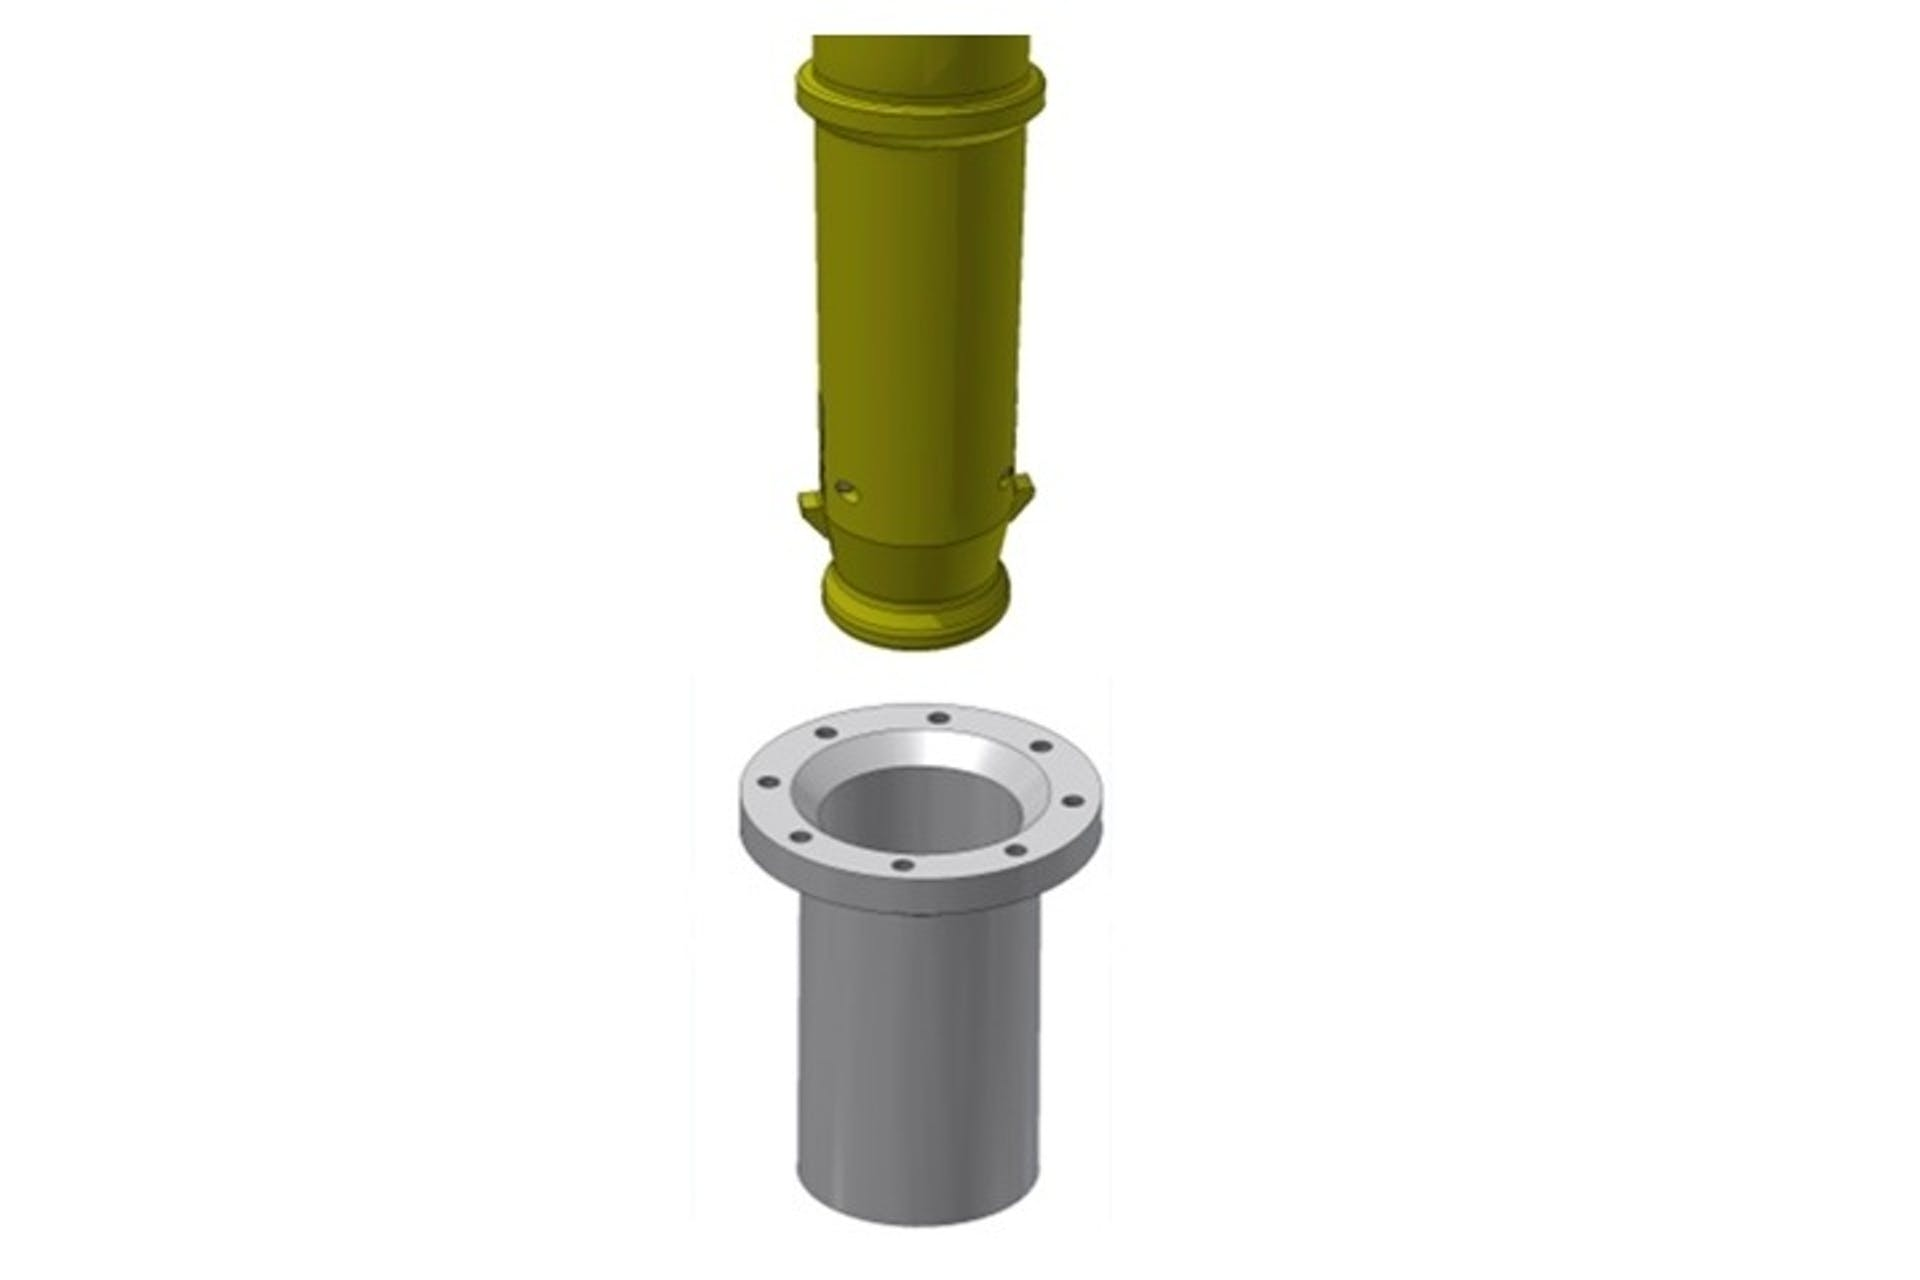 Receptacle for Top Releasable Mini Guidepost – MRTR